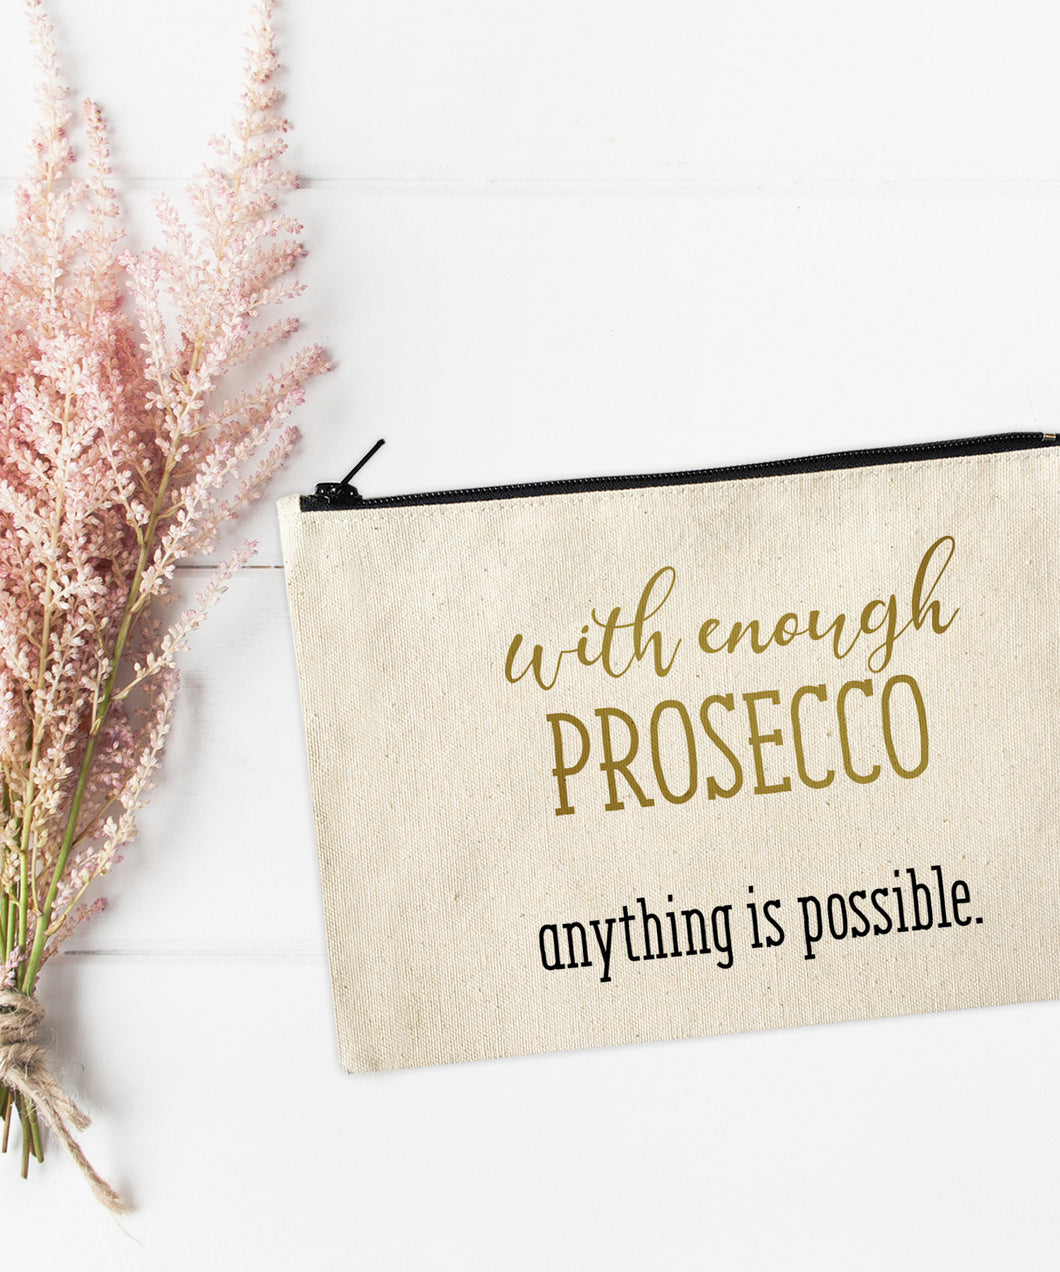 With enough Prosecco anything is possible